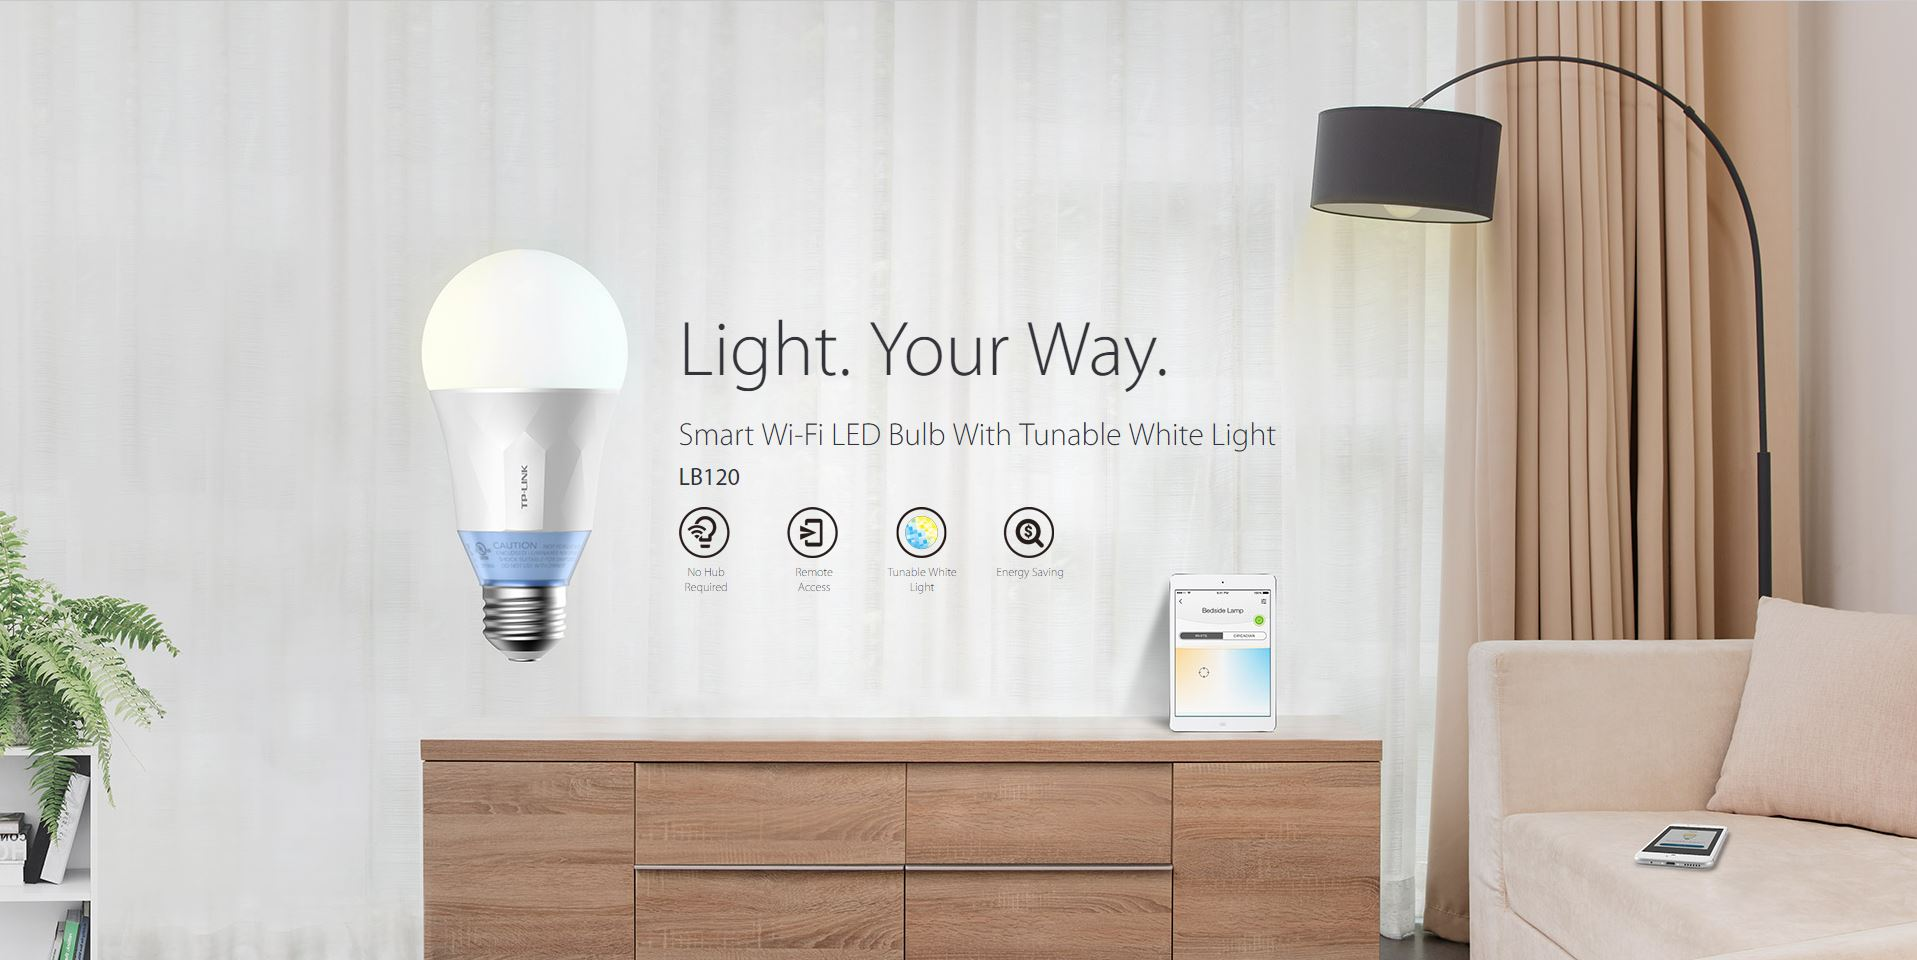 Smart Led TP-Link Bulb LB120 Review